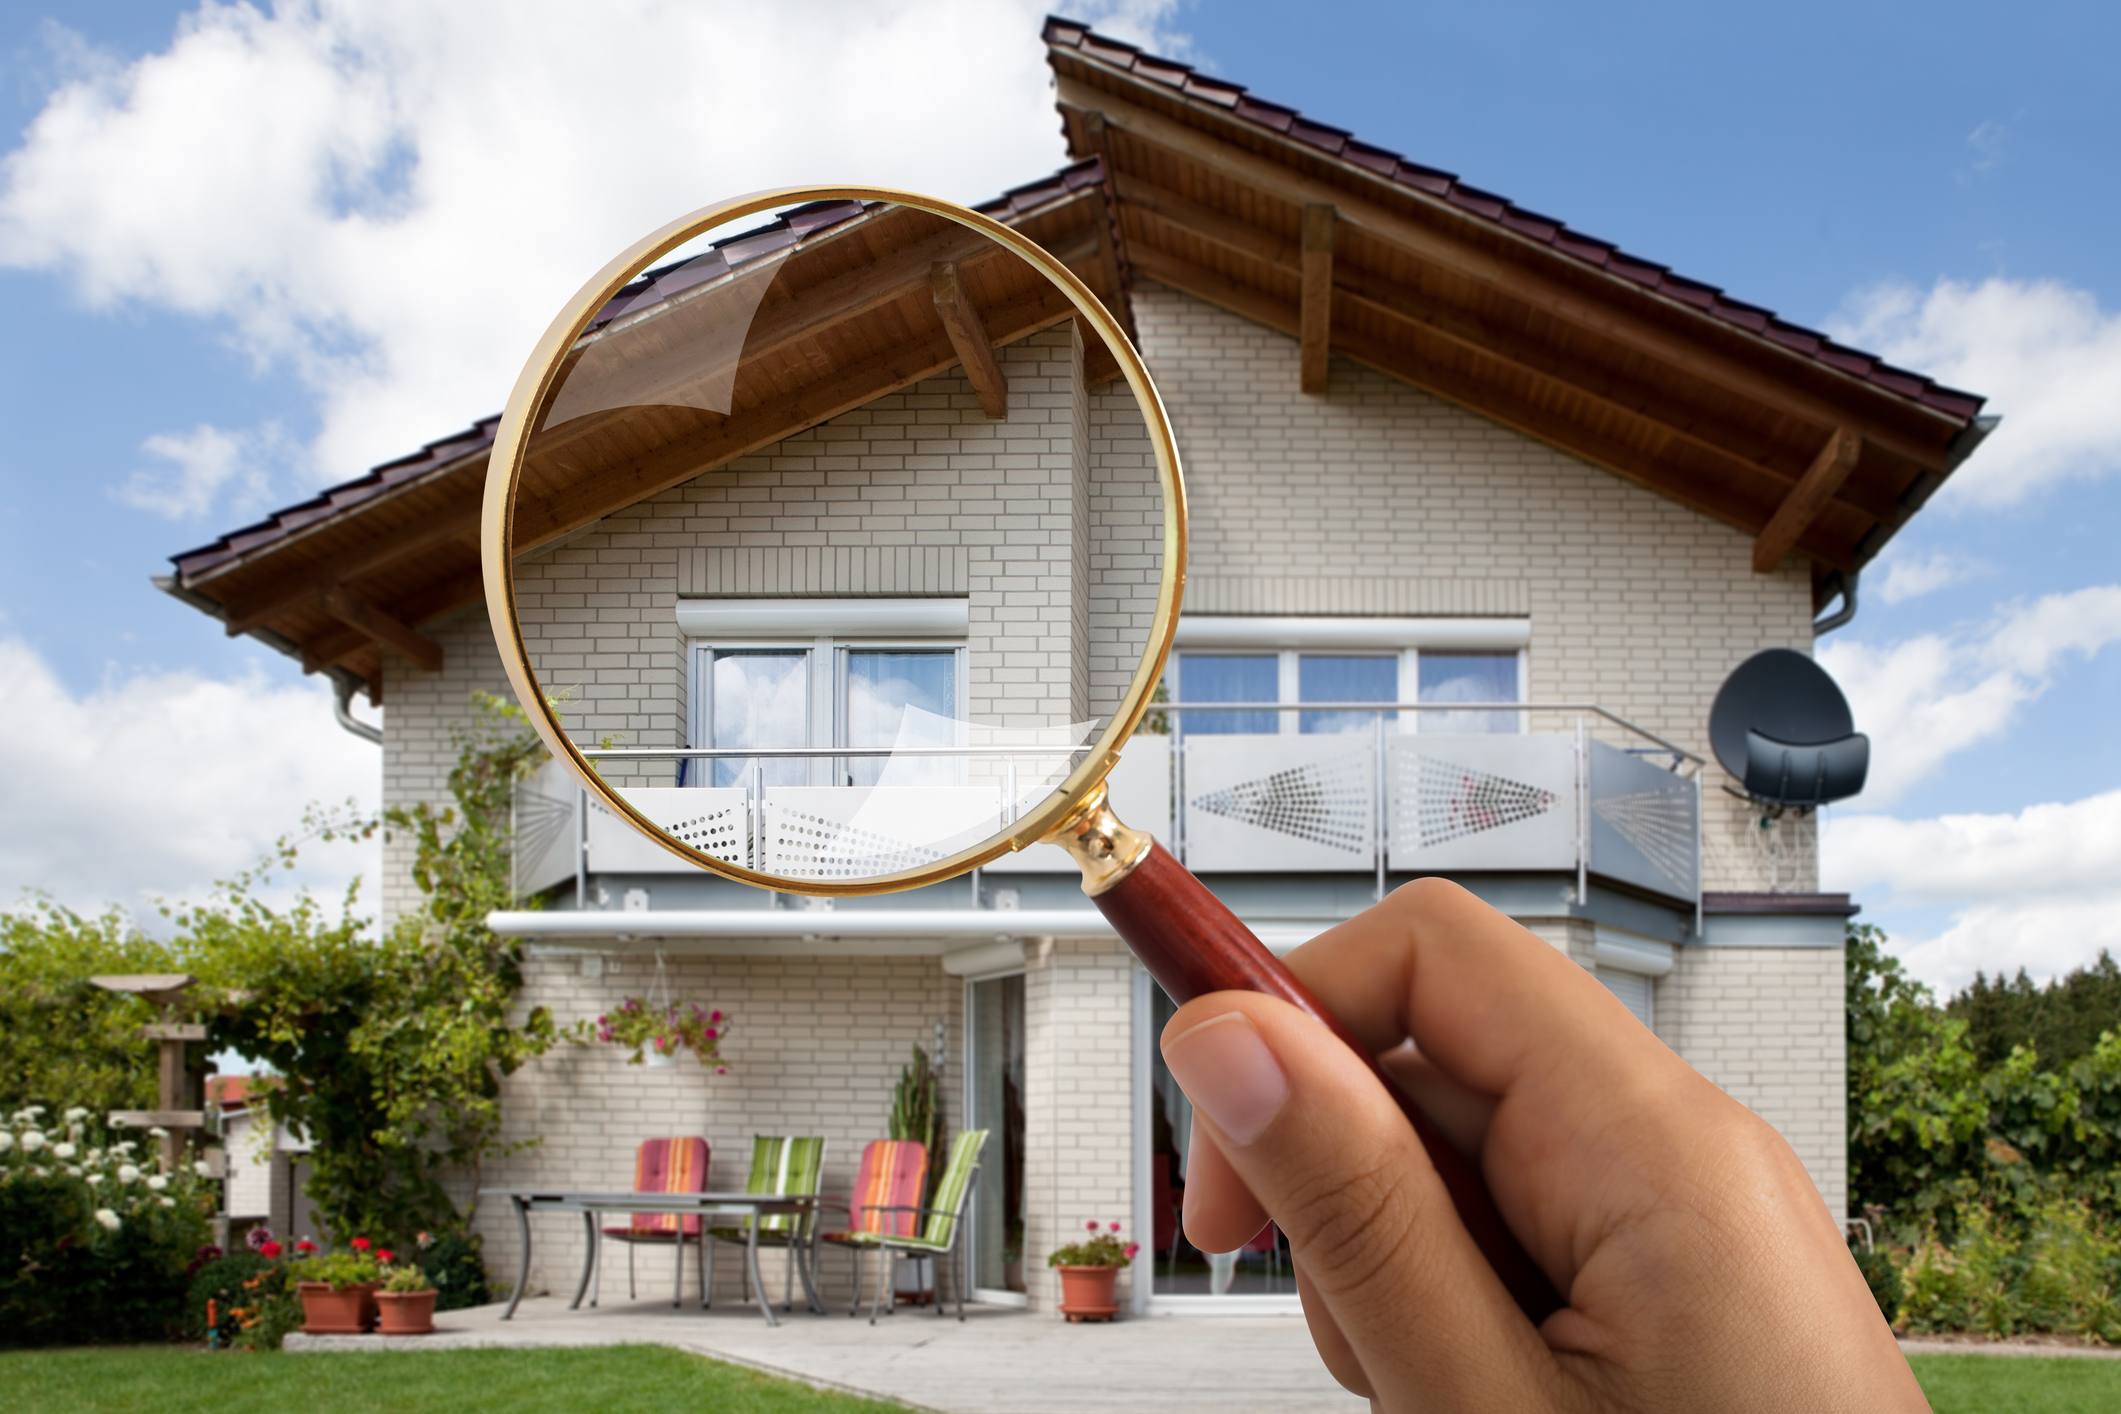 When it comes to your home leave it to the experts - CV Roofing is the Insurance Restoration Specialist you can trust